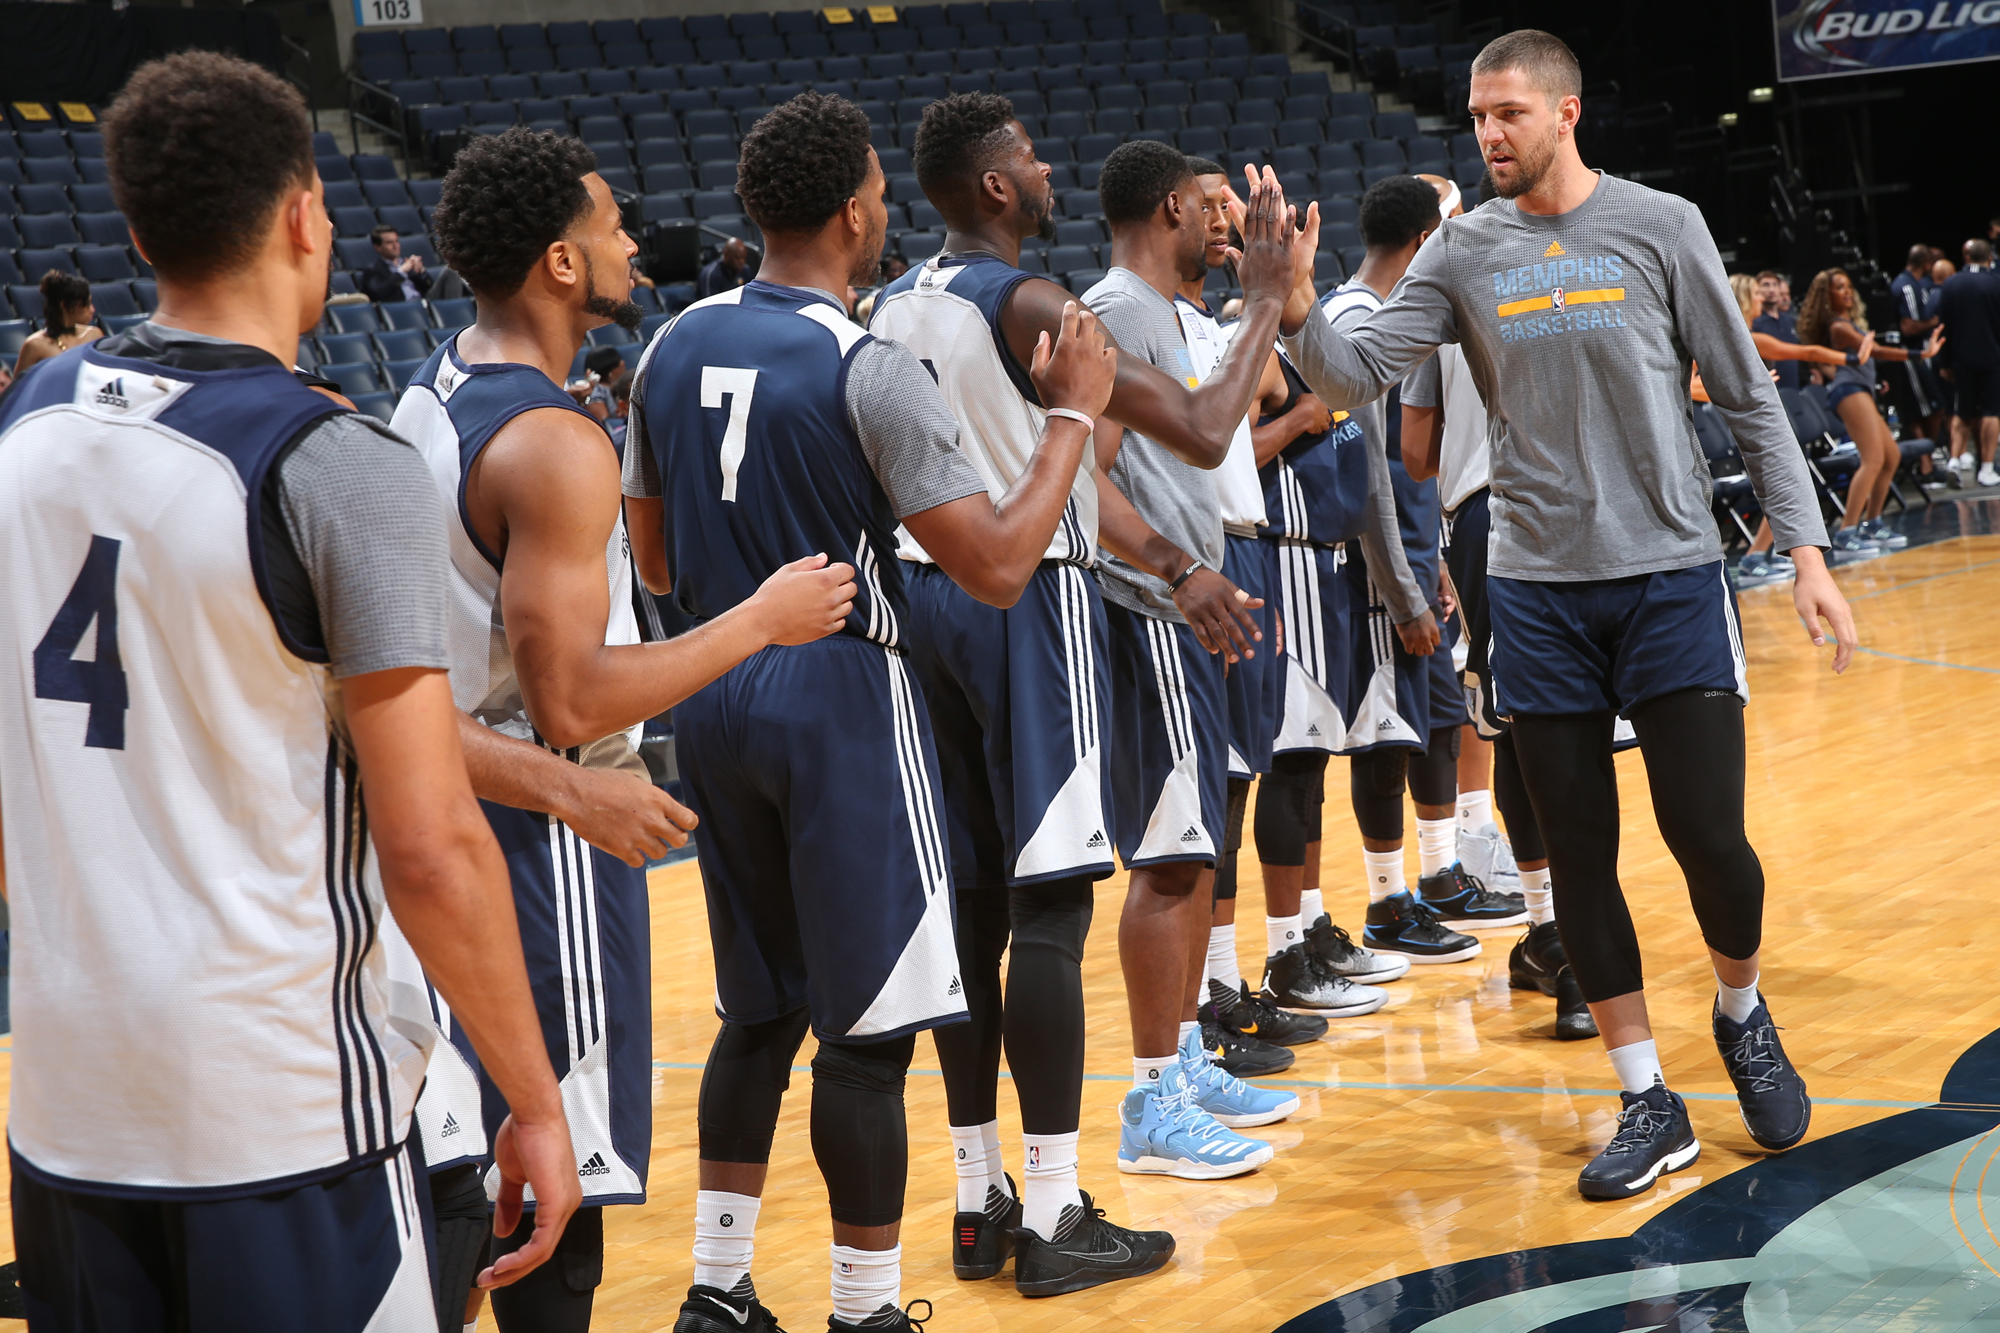 Chandler Parsons #25 of the Memphis Grizzlies high fives teammates during an open practice on October 1, 2016 at FedExForum in Memphis, Tennessee.